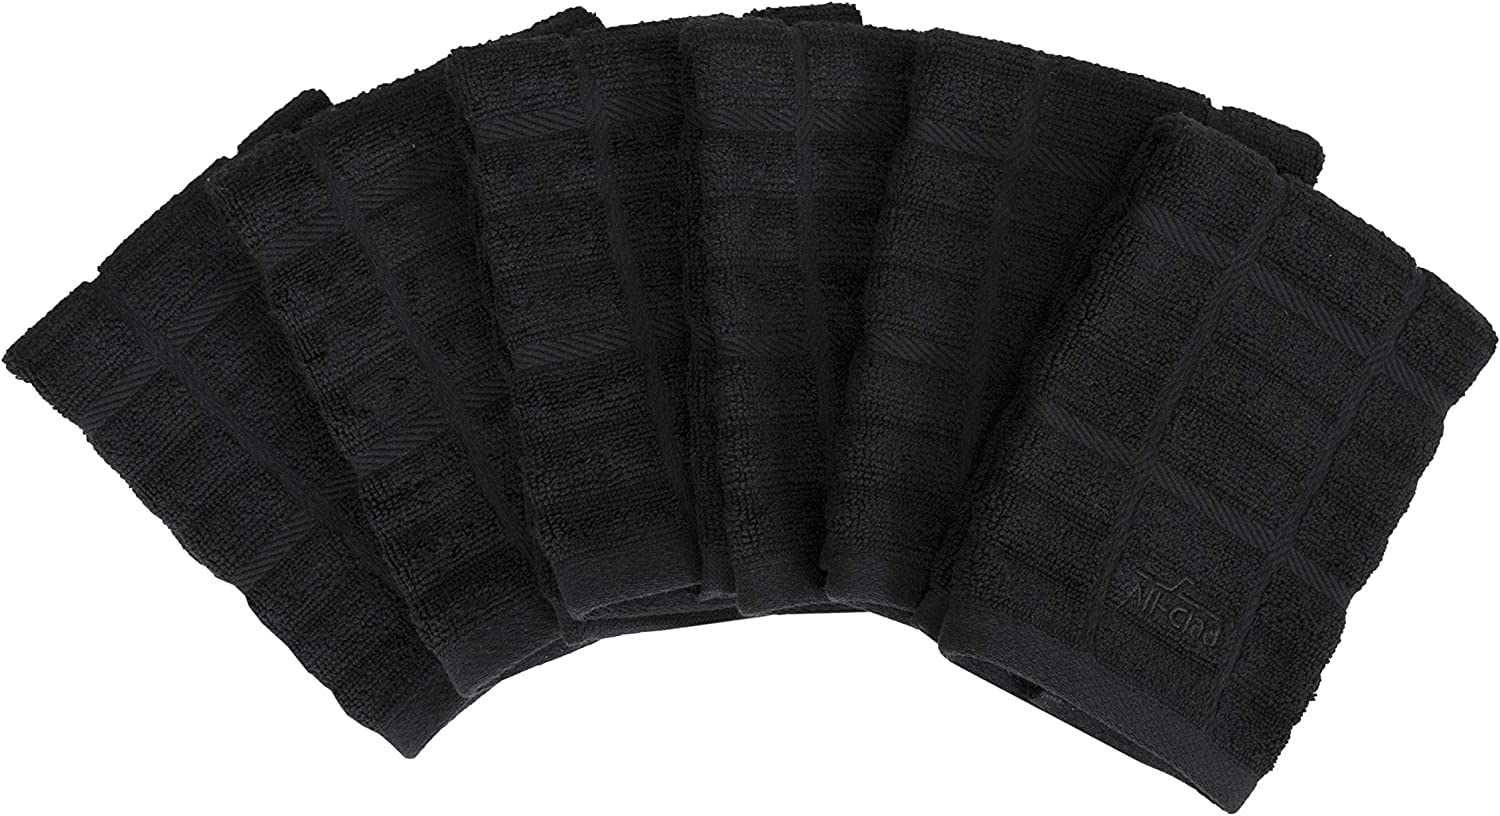 All-Clad Textiles 89314 Cotton Dish Cloth, 6-Pack, Black